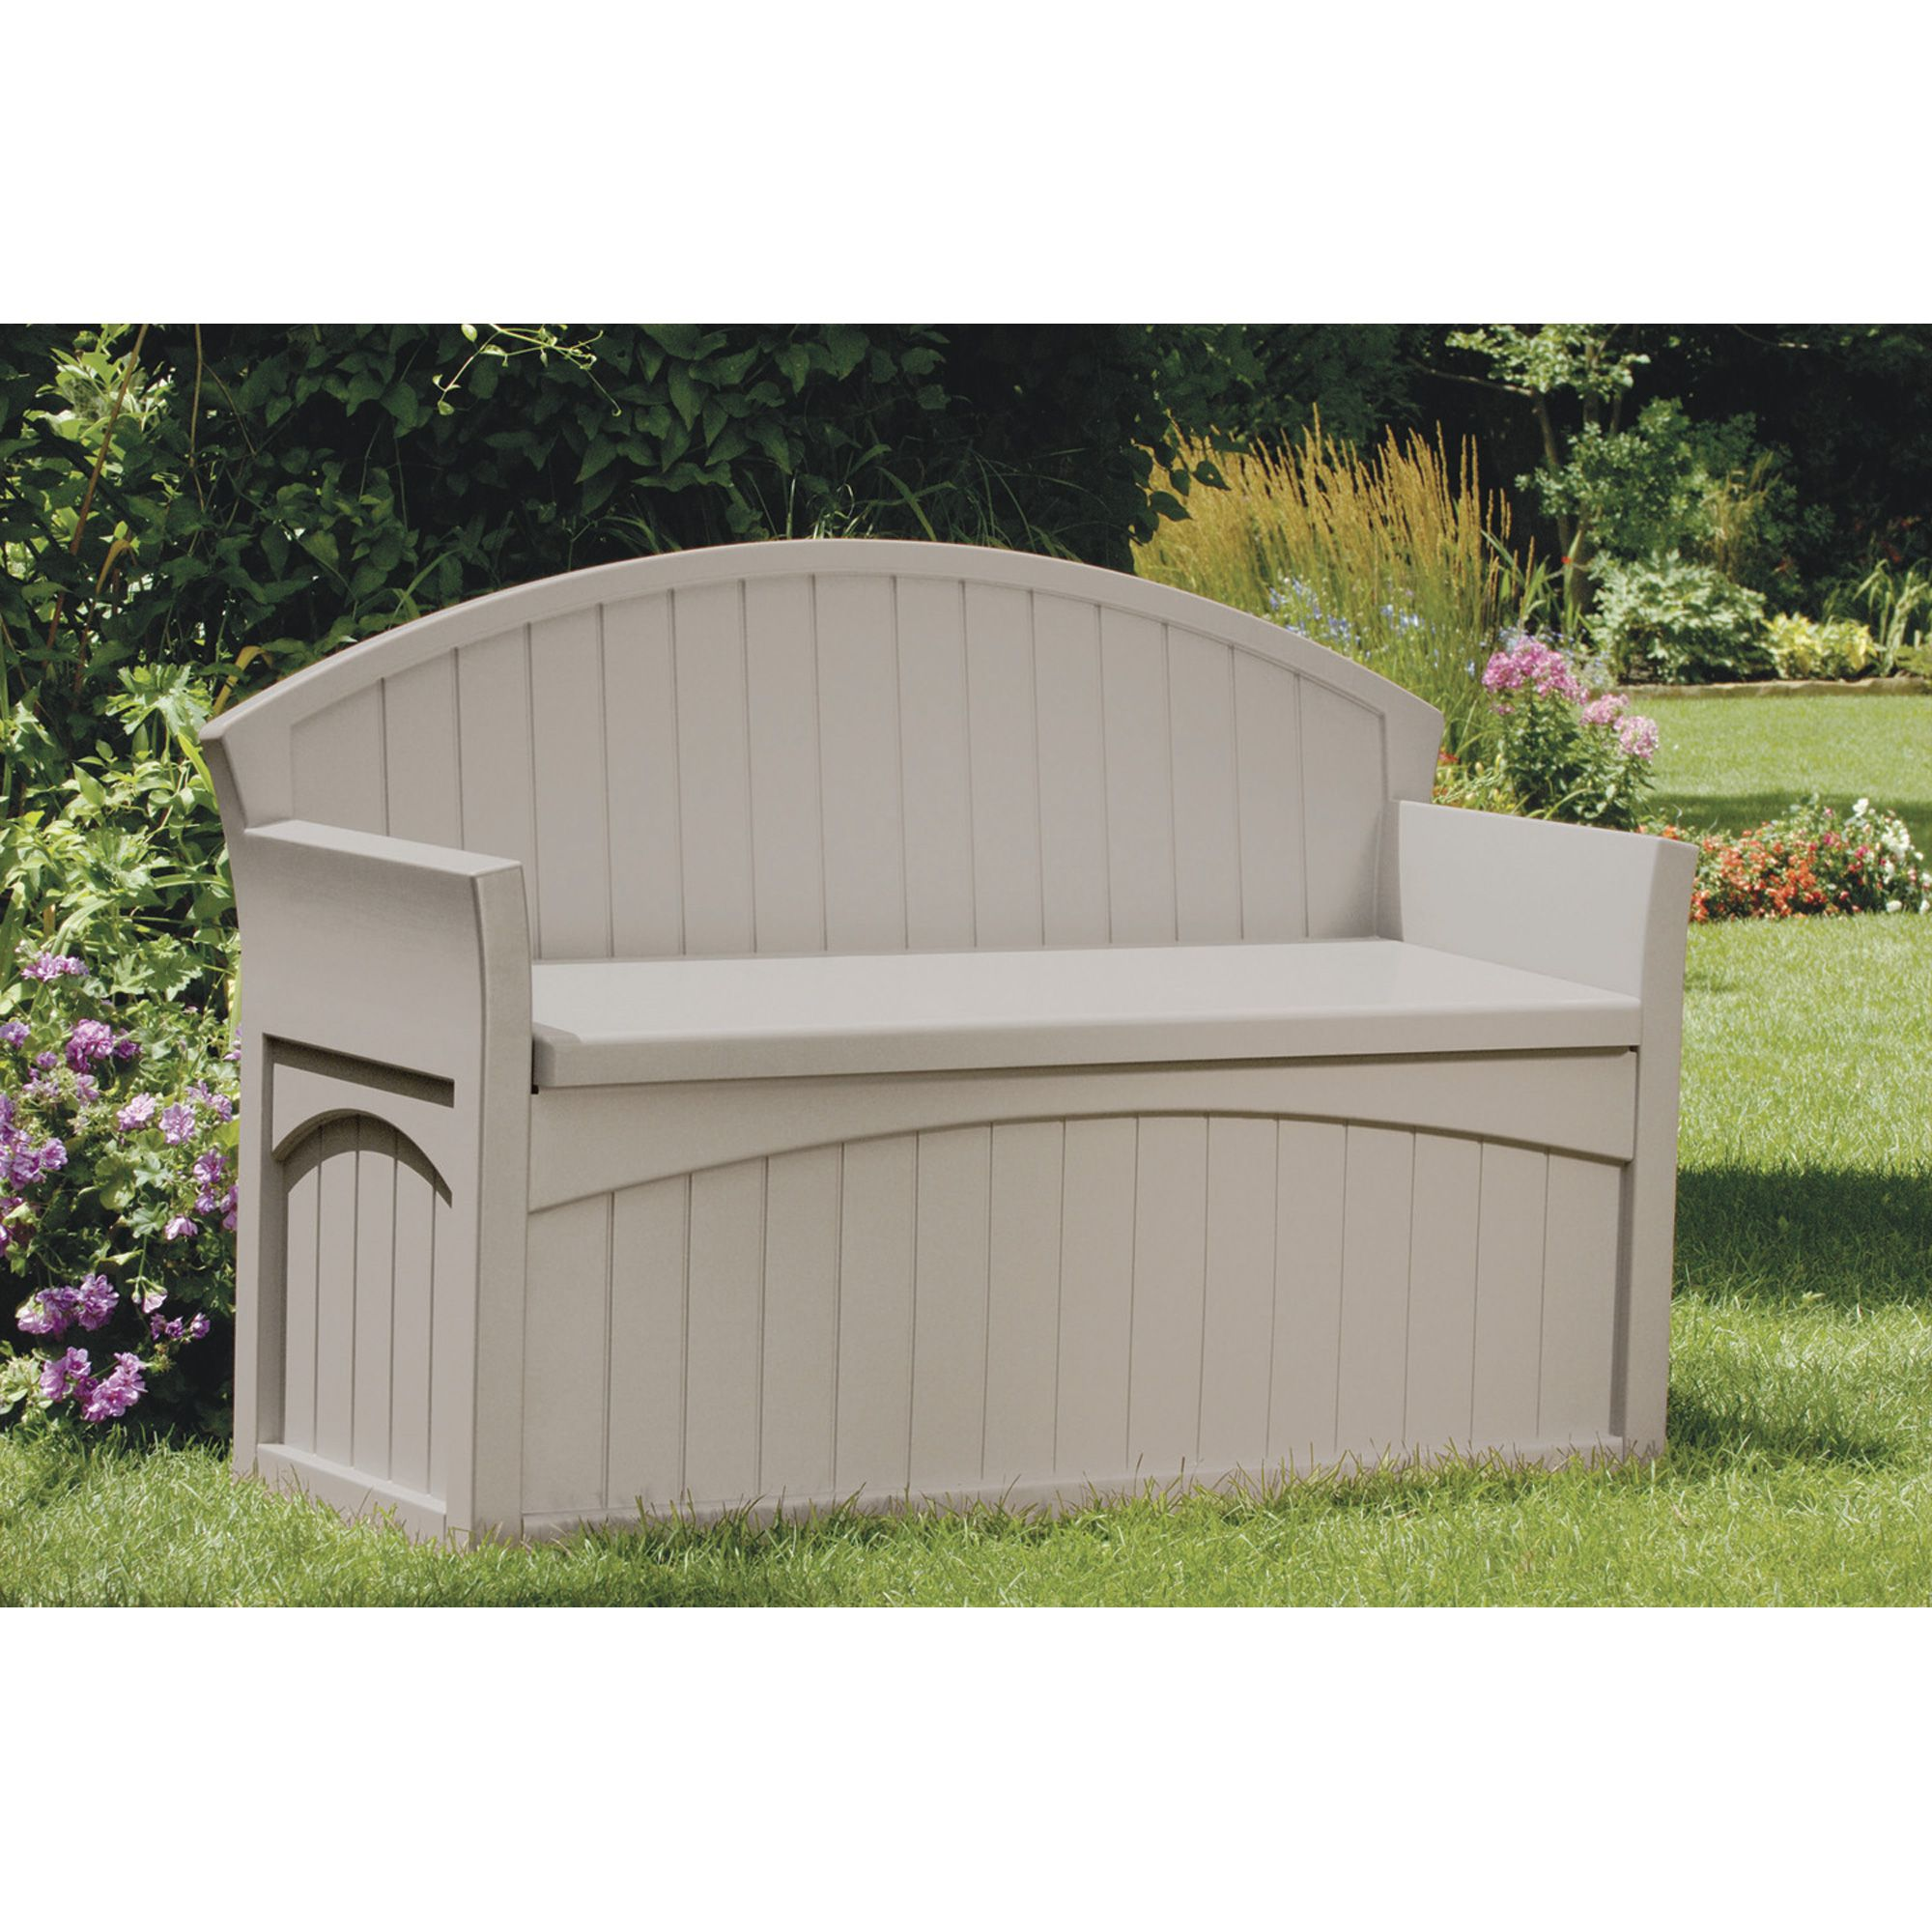 Suncast Patio Bench With 50 Gallon Storage Compartment Model Pb6700 Benches Patio Storage Outdoor Storage Bench Suncast Patio